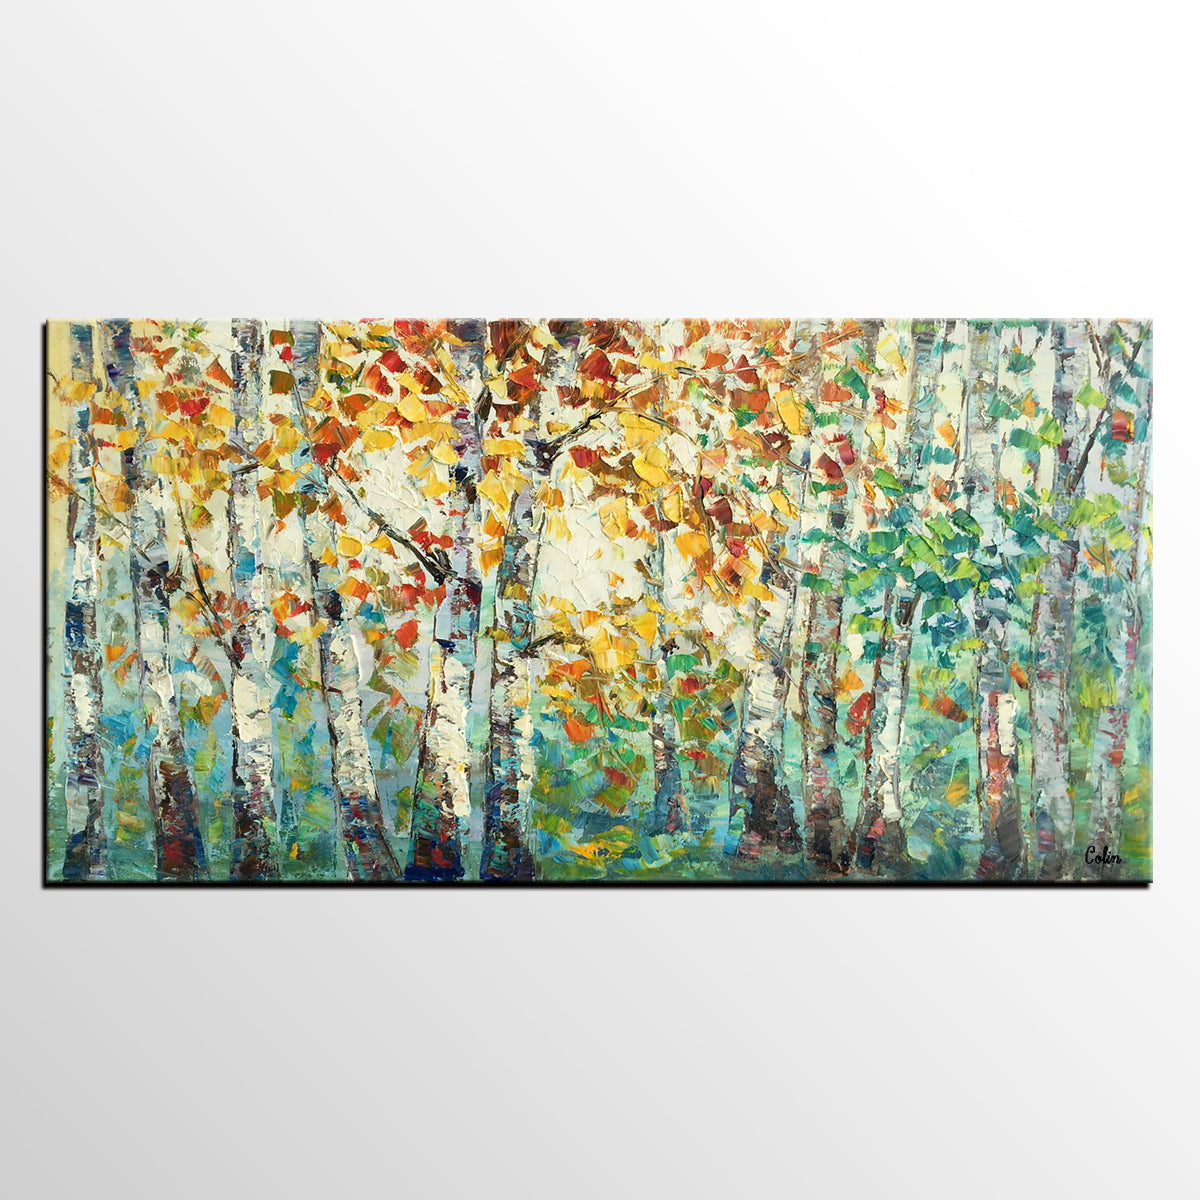 Abstract Art for Sale, Autumn Tree Landscape Painting, Contemporary Artwork